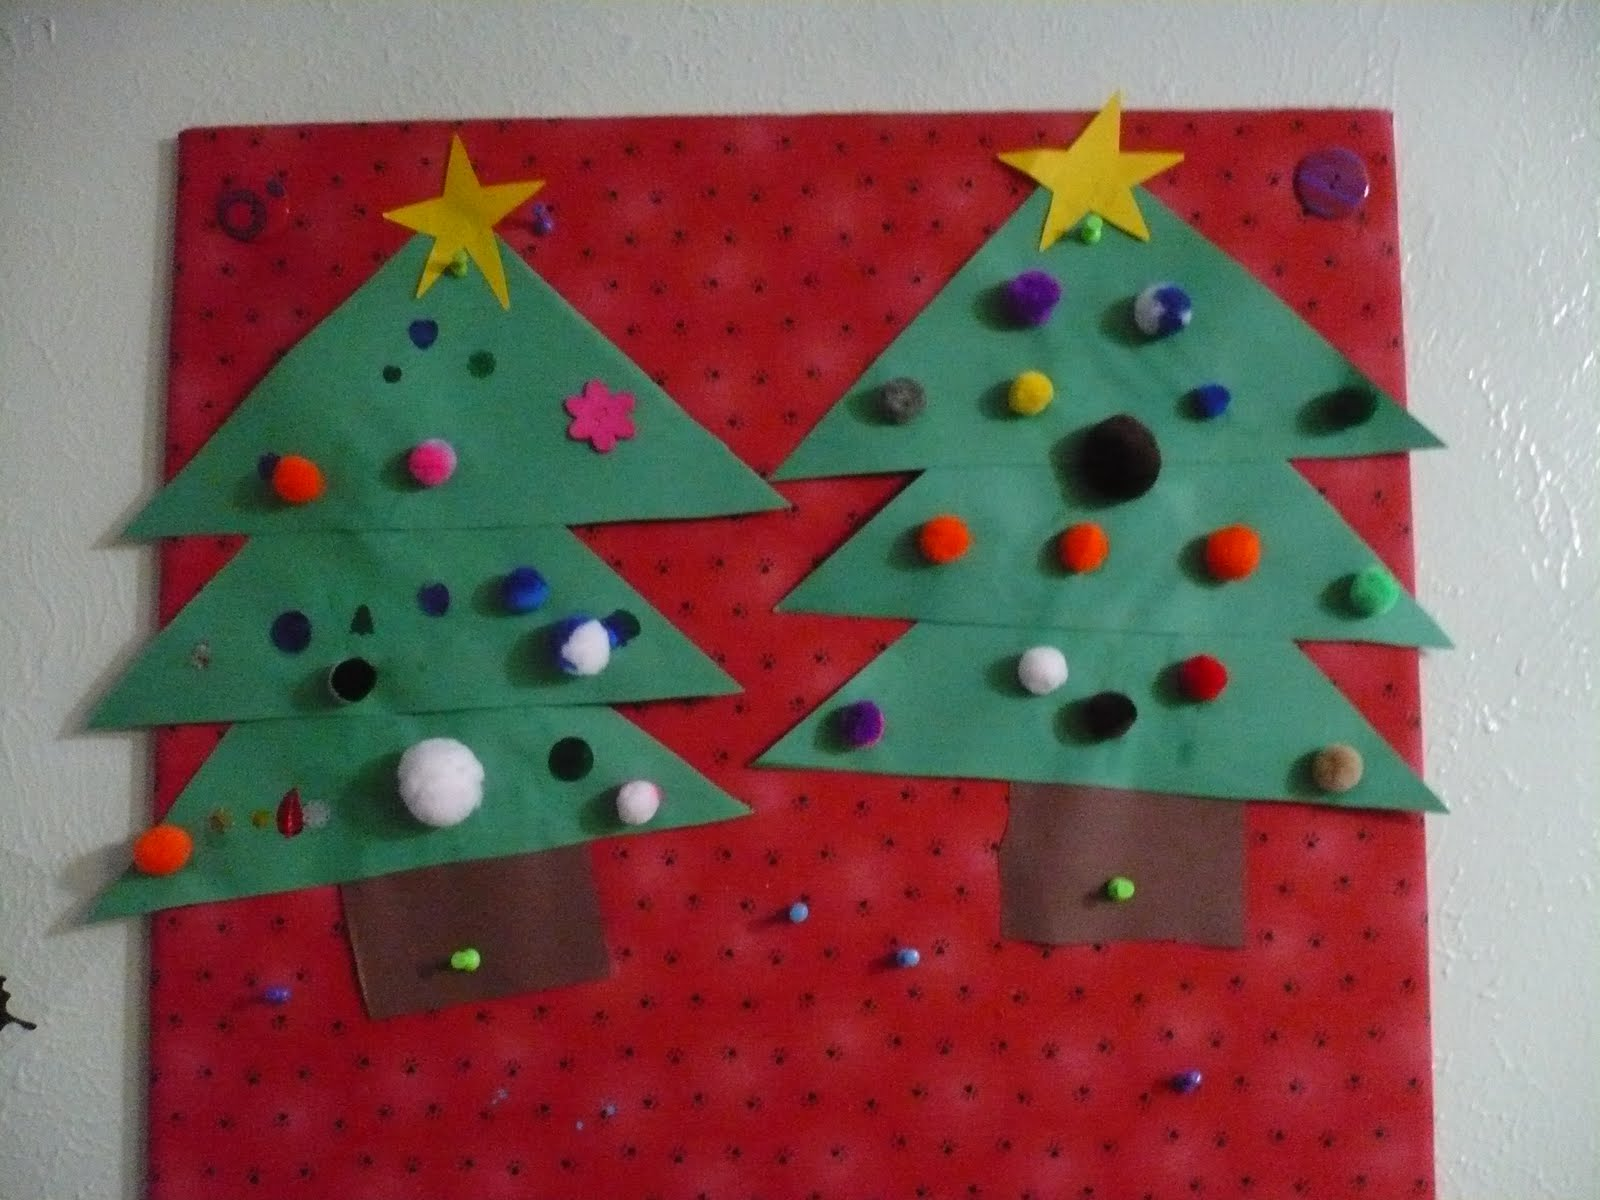 Christmas Crafts For 1 Year Olds.Garden Of Blessings Child Care Christmas Arts Crafts